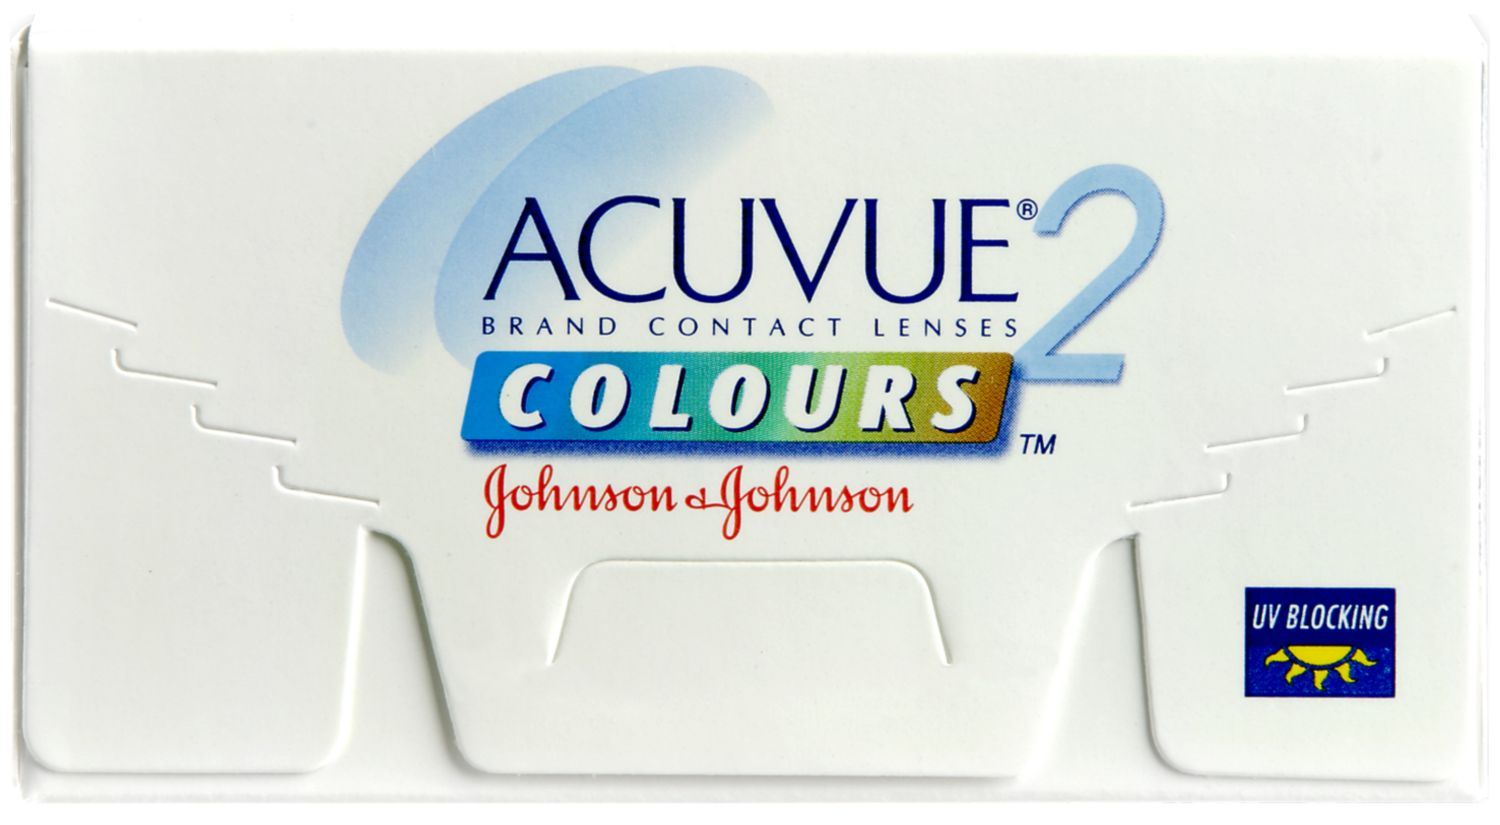 ACUVUE® 2 COLOURS®